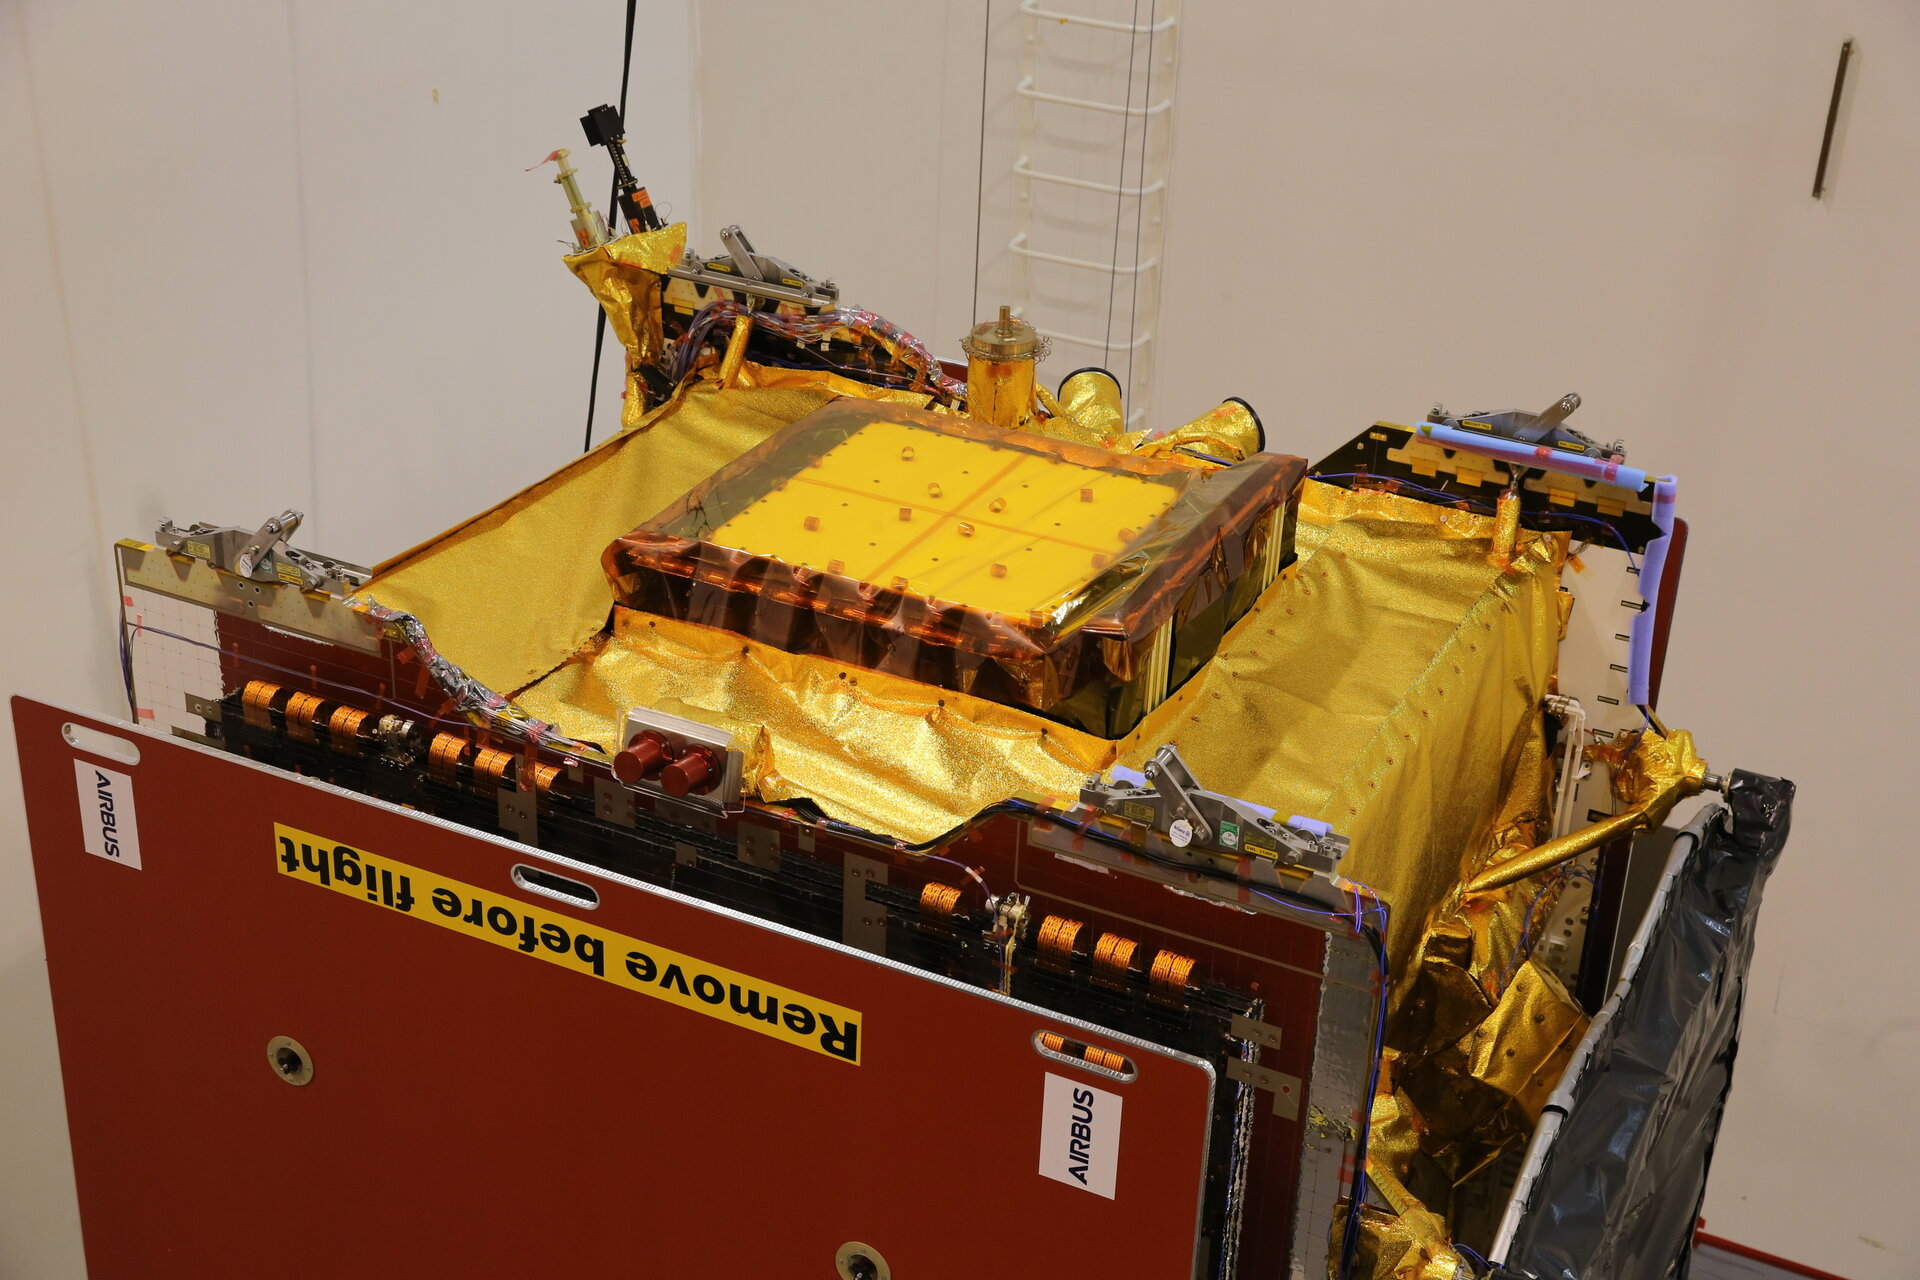 Quantum satellite completes vibration tests